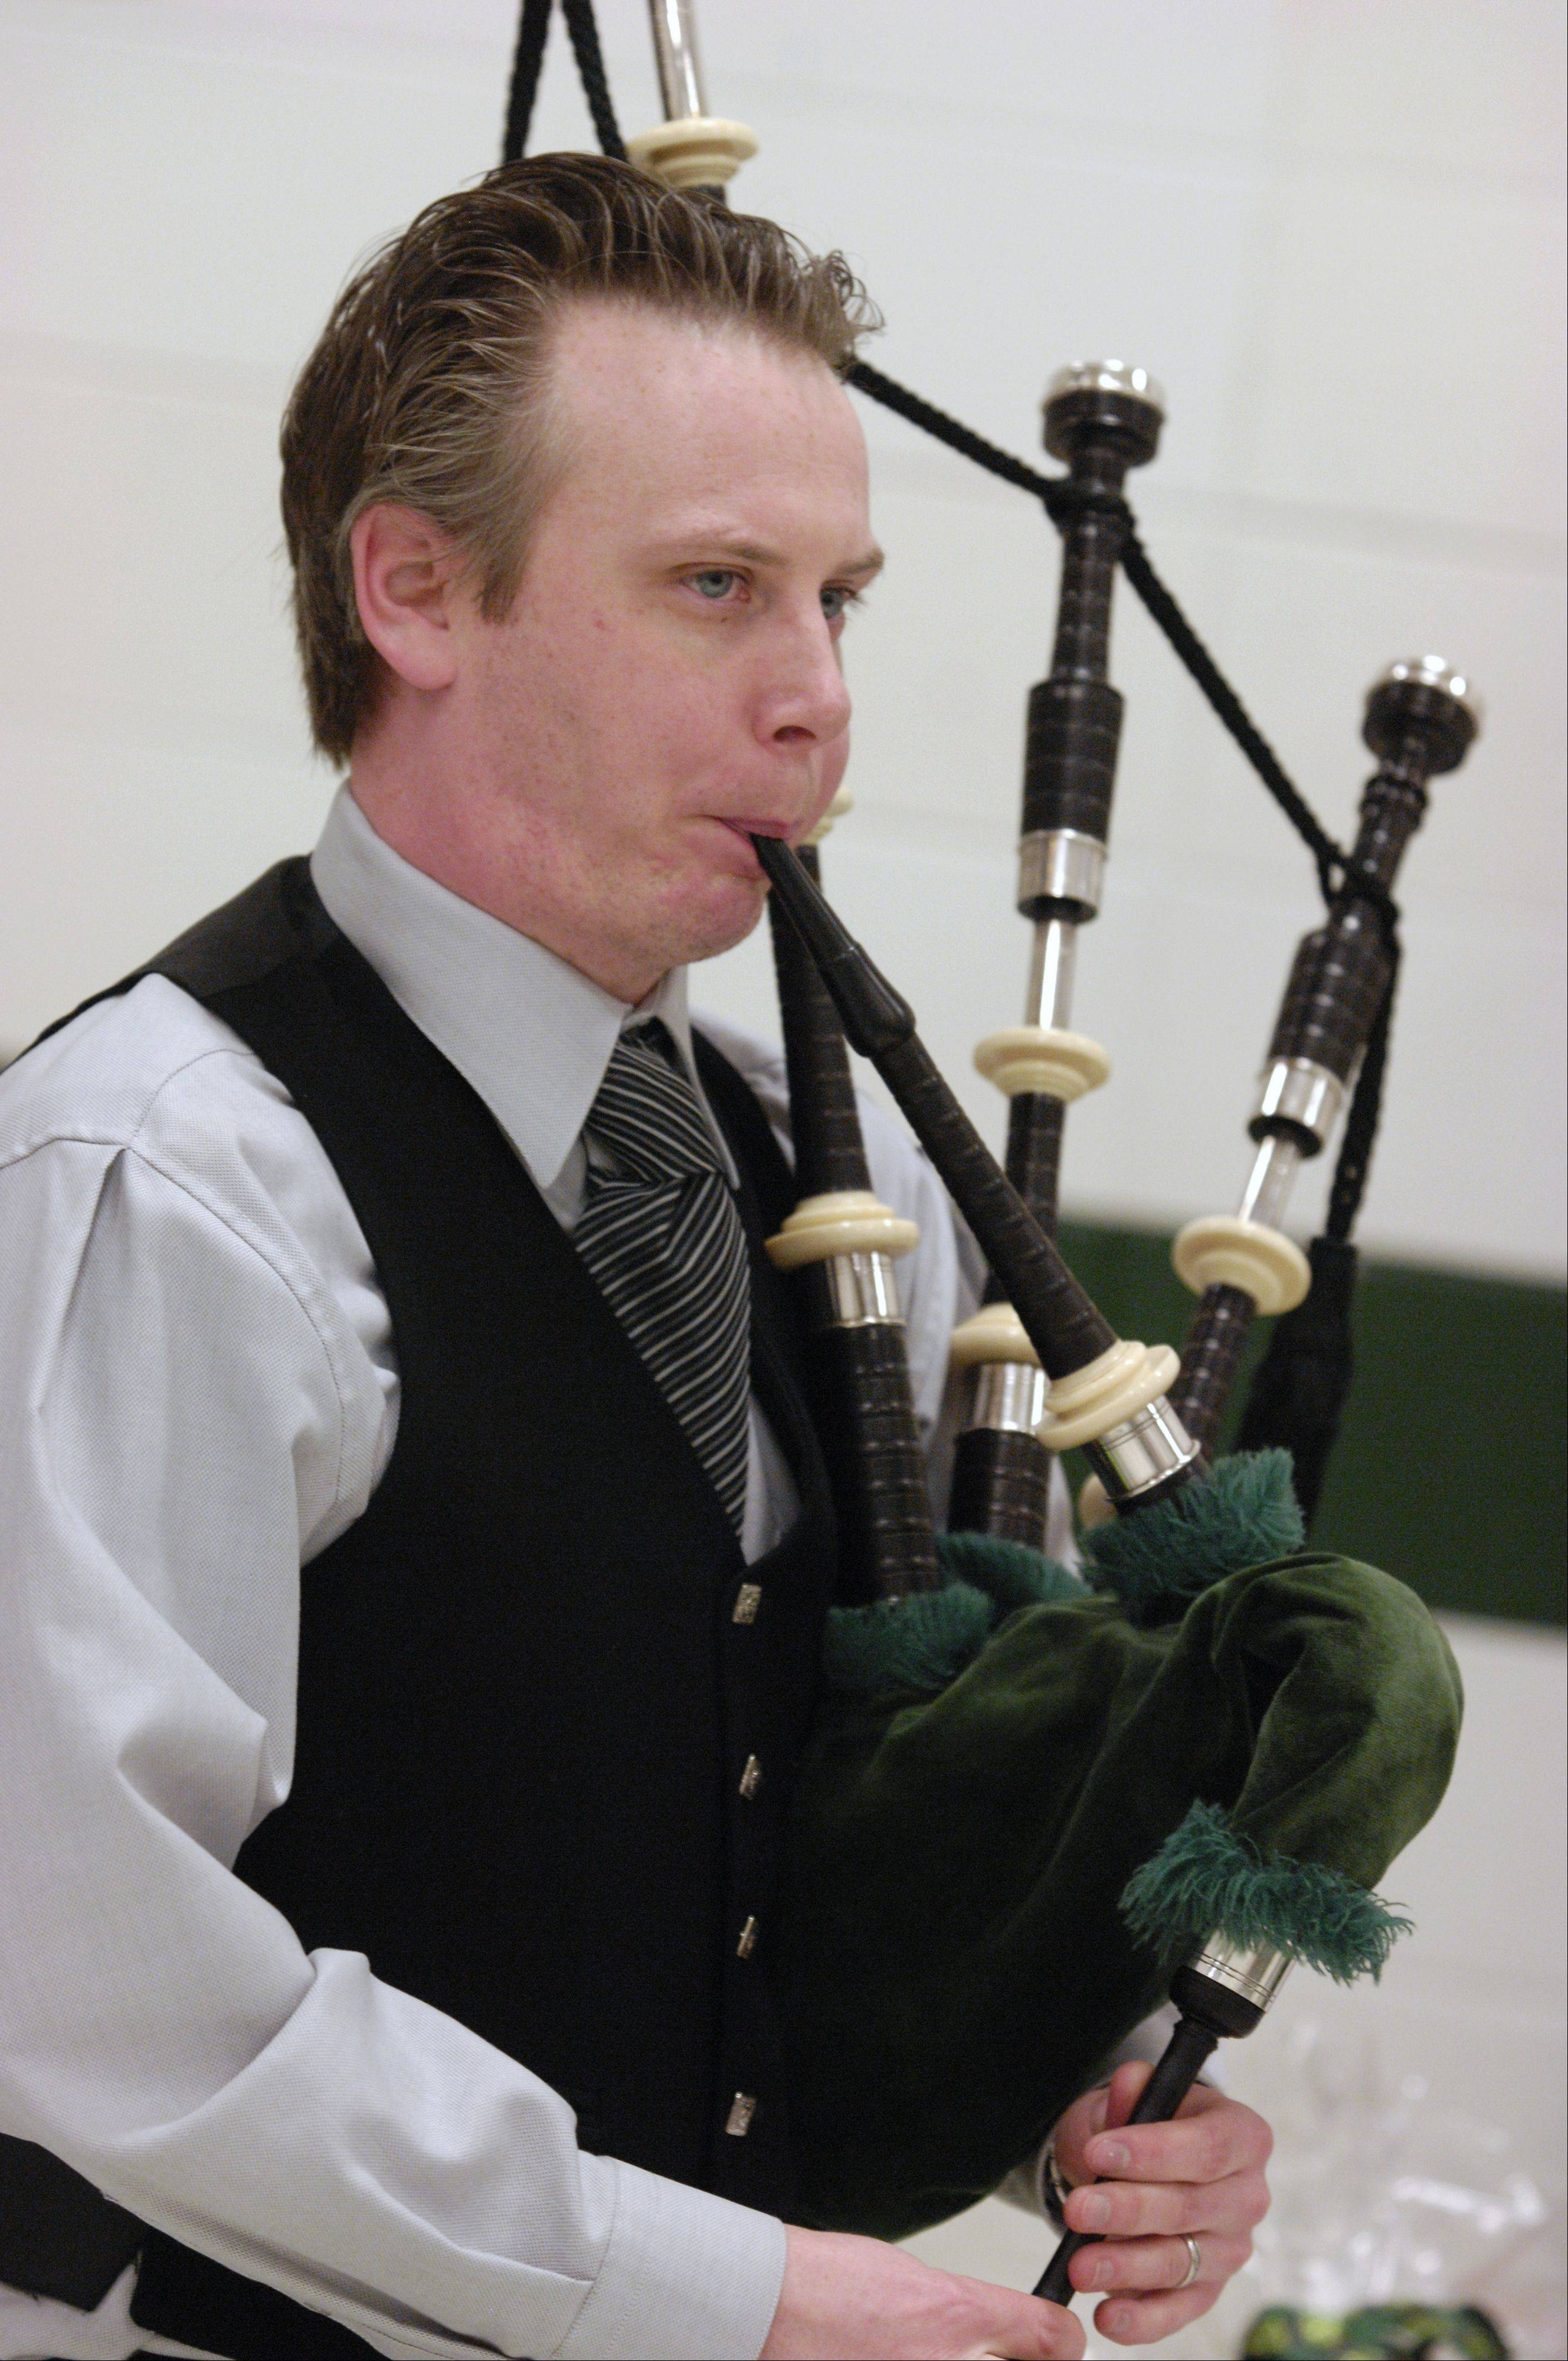 Ian Wallace of St. Charles volunteers to play his bagpipes during the St. Baldrick's Day head shaving event at Evergreen Elementary School in honor of third grader Jack O'Donoghue, who's cancer is now in remission.